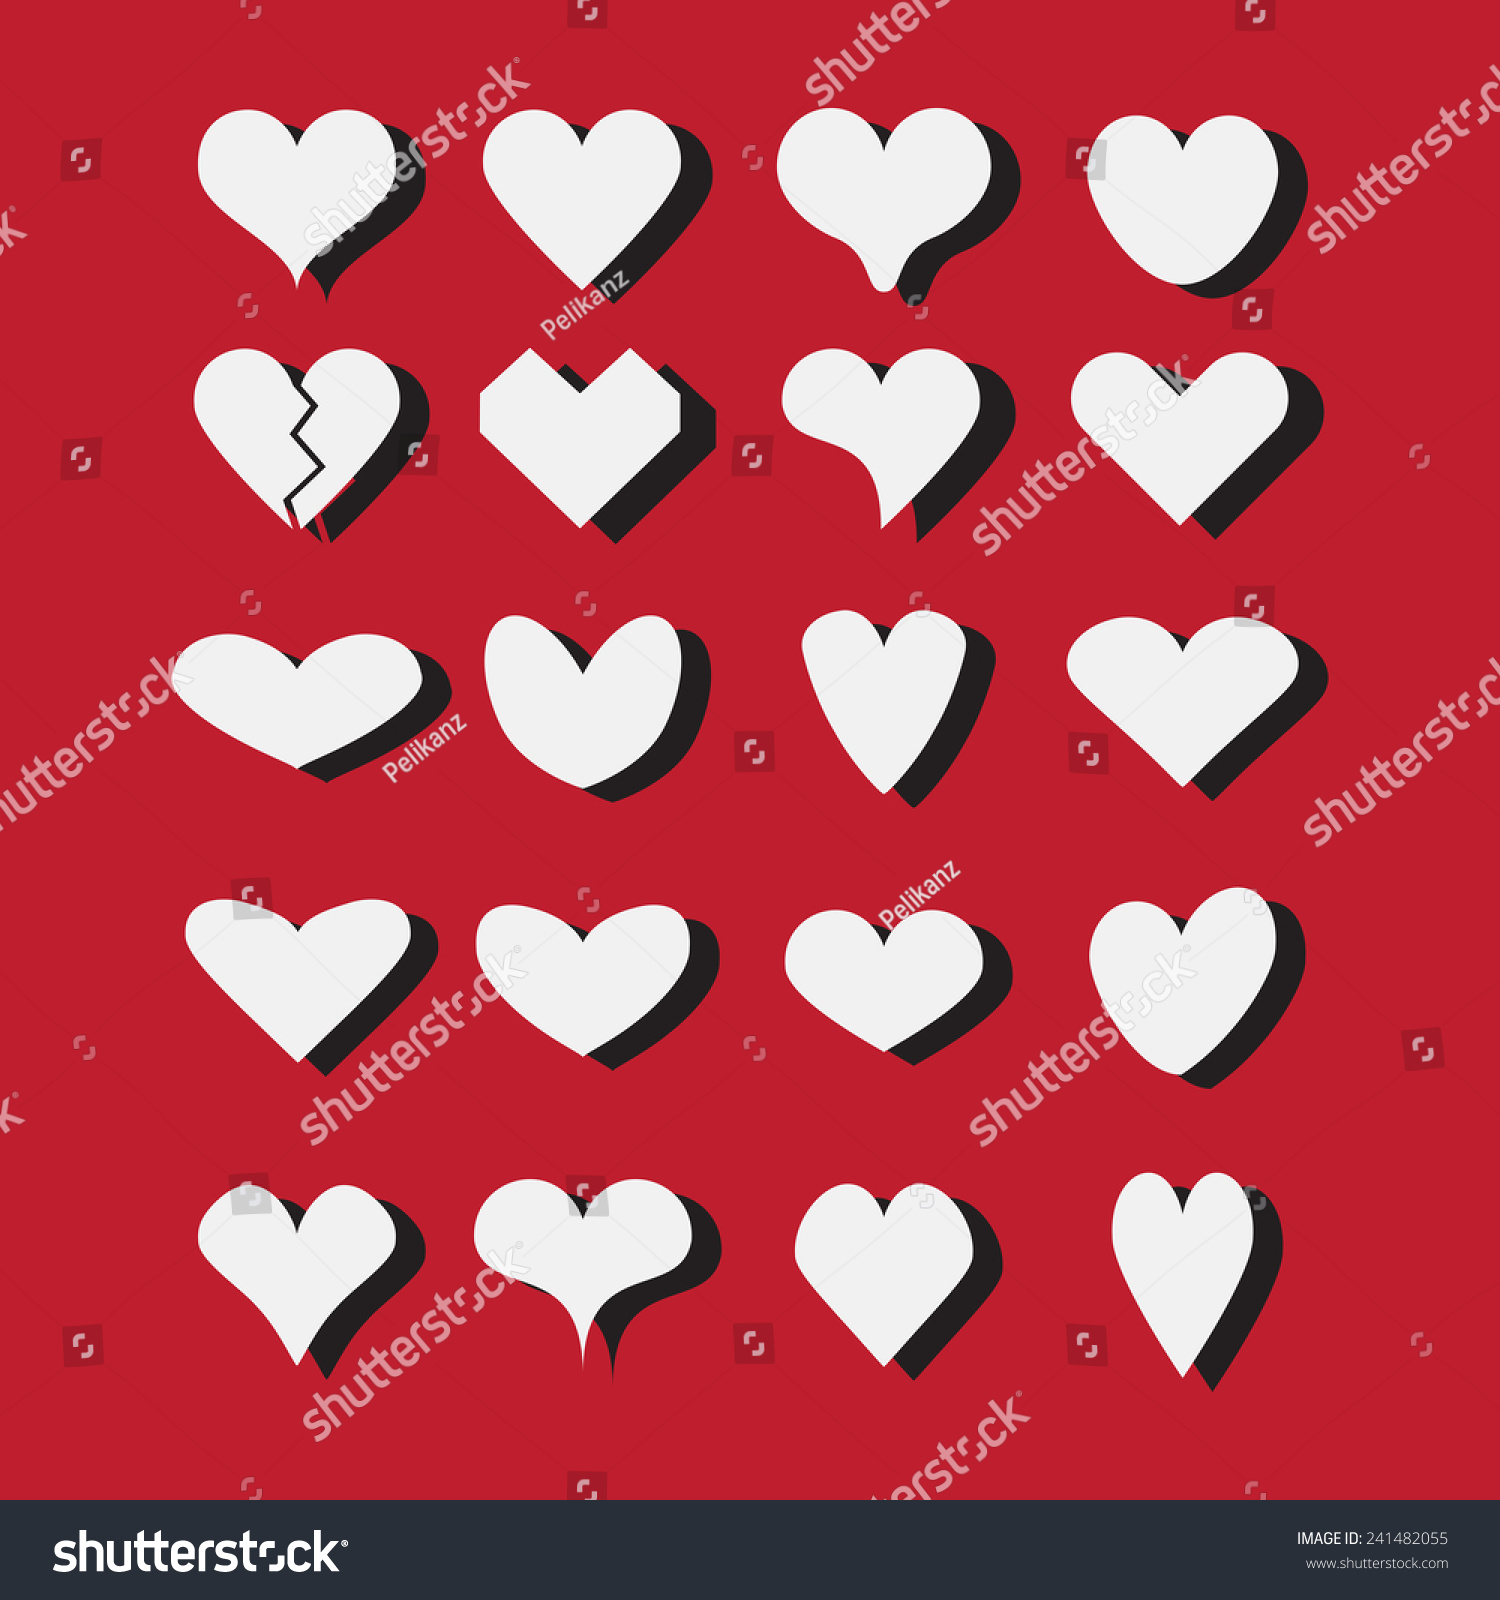 Set Different White Heart Shapes Icons Stock Illustration 241482055